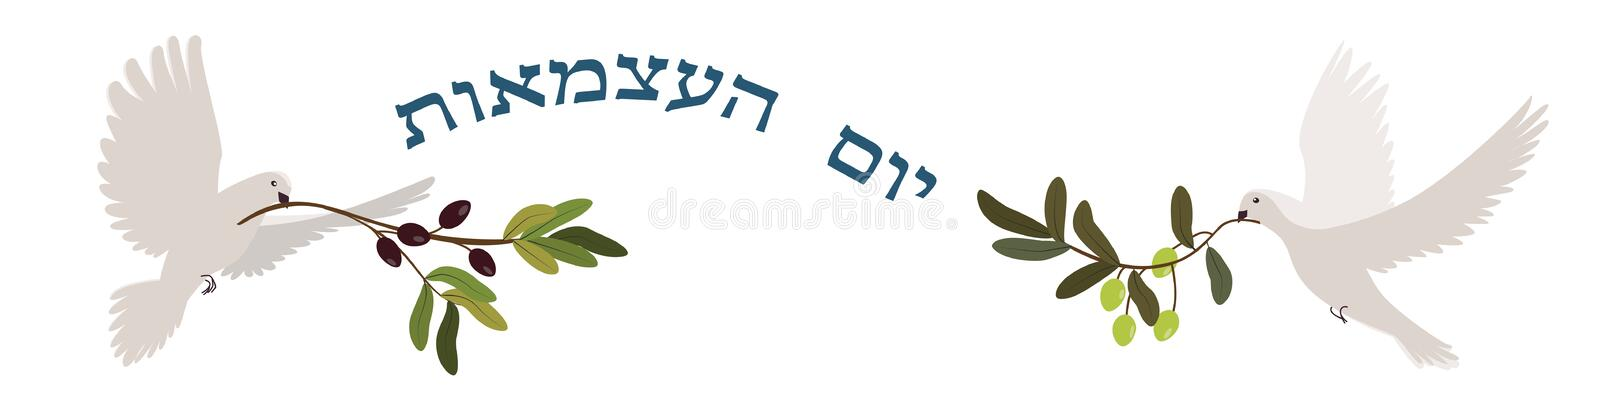 Israel Independence banner. Israel Independence, Yom Haatzmaut. Israeli National holiday horizontal banner with hebrew text, pigeons and olive branches stock illustration